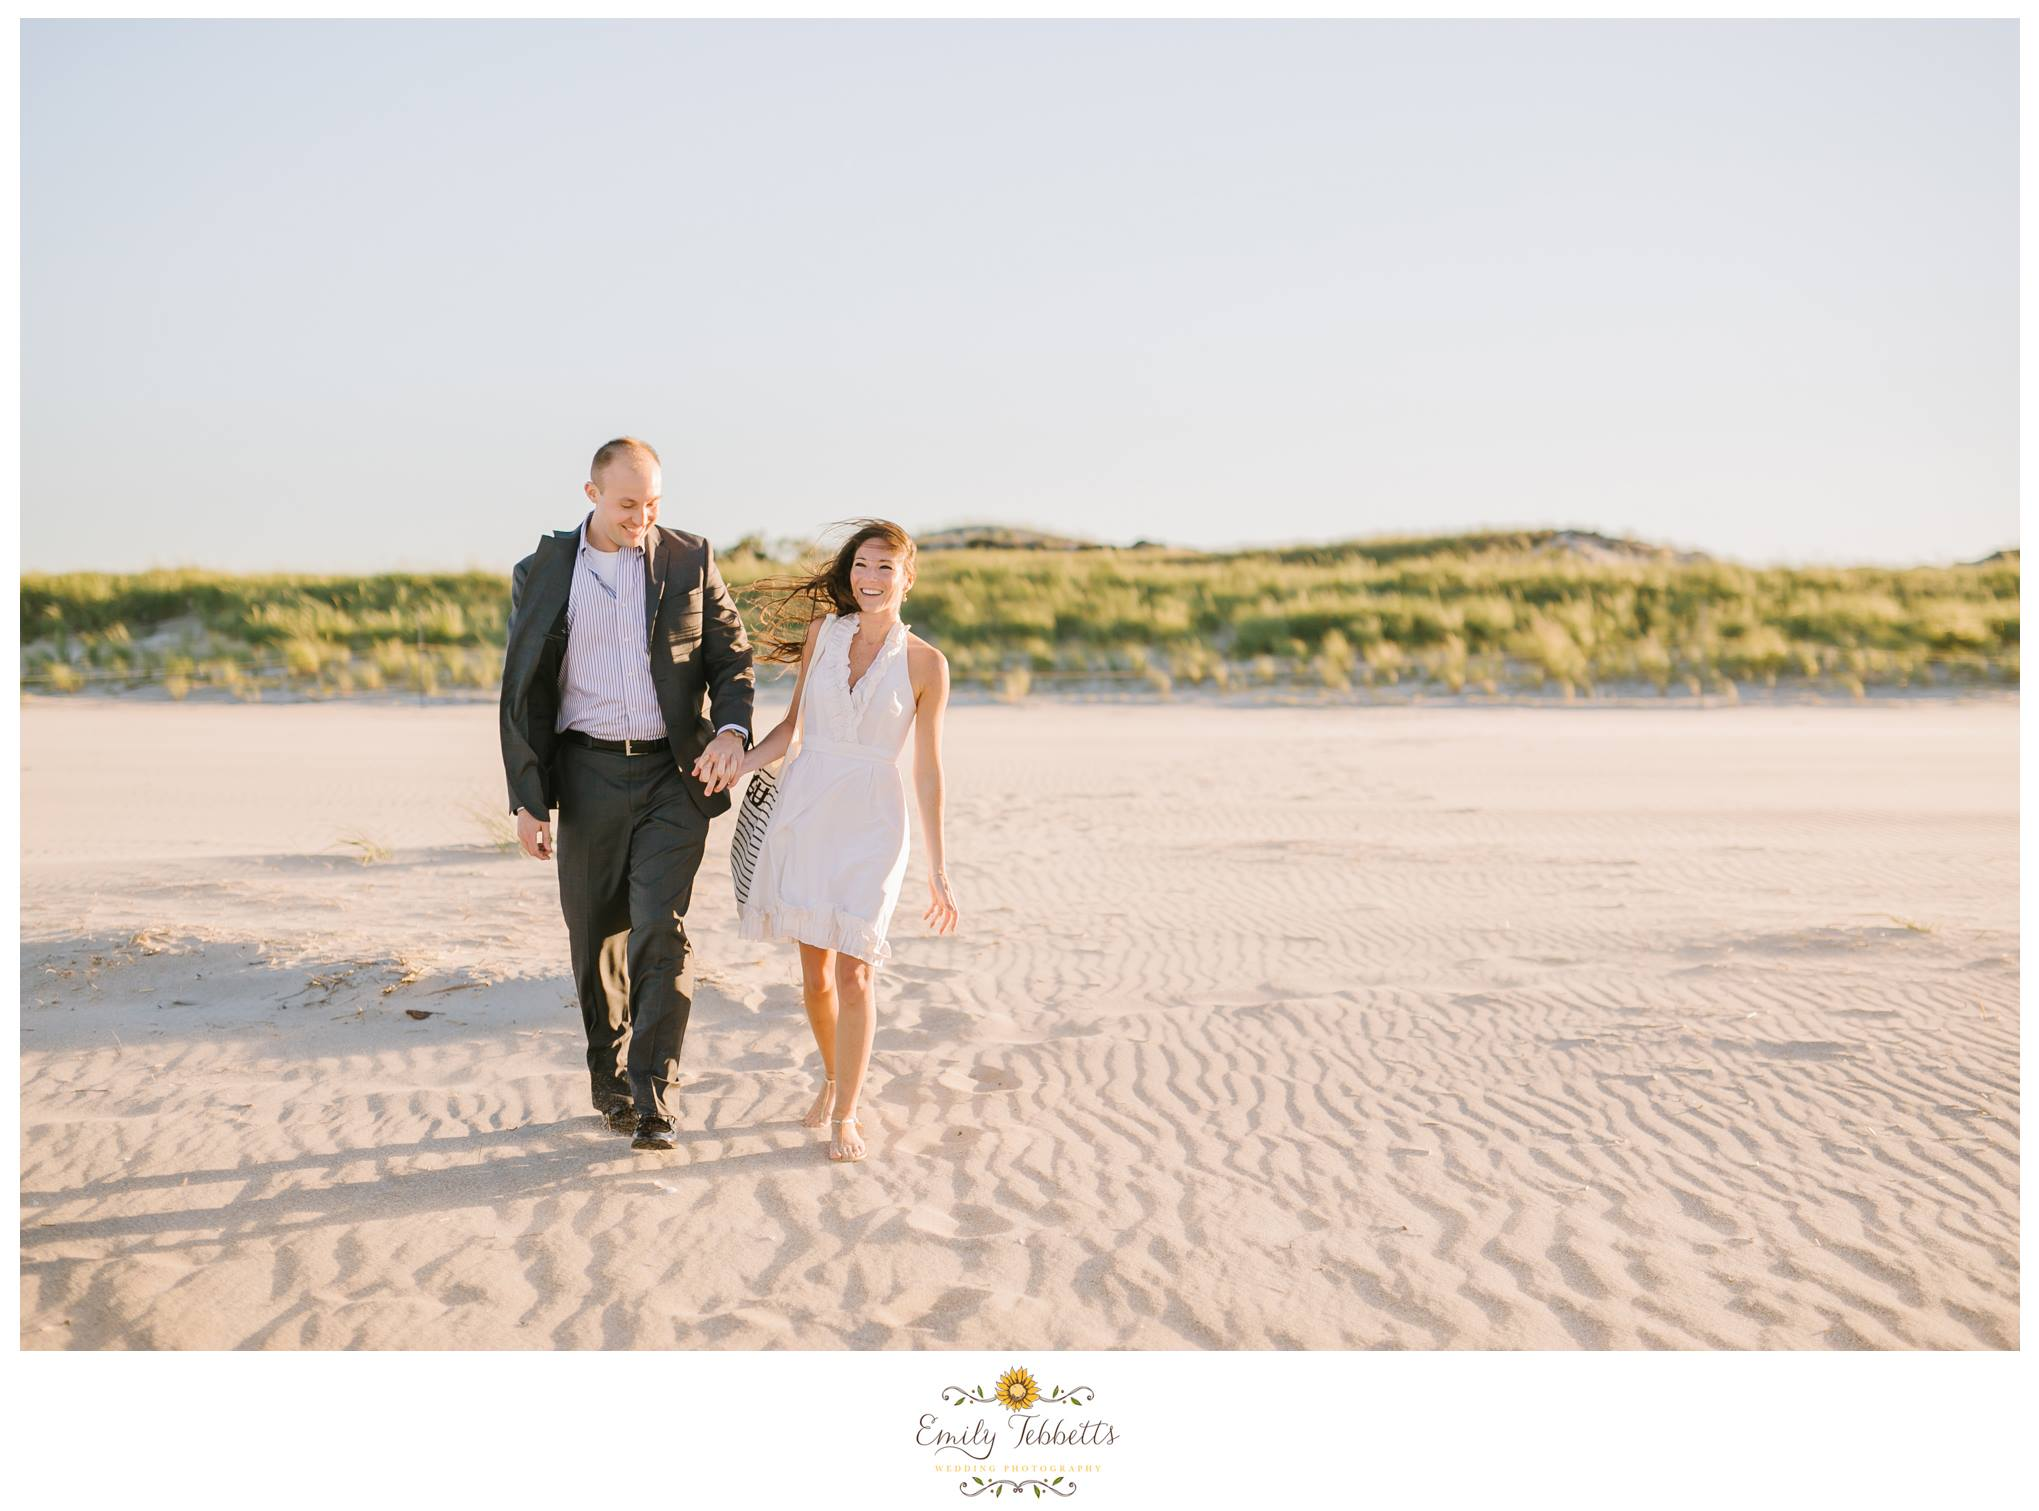 Emily Tebbetts Photography Engagement Session || Crane Beach, Ipswhich, MA 10.jpg